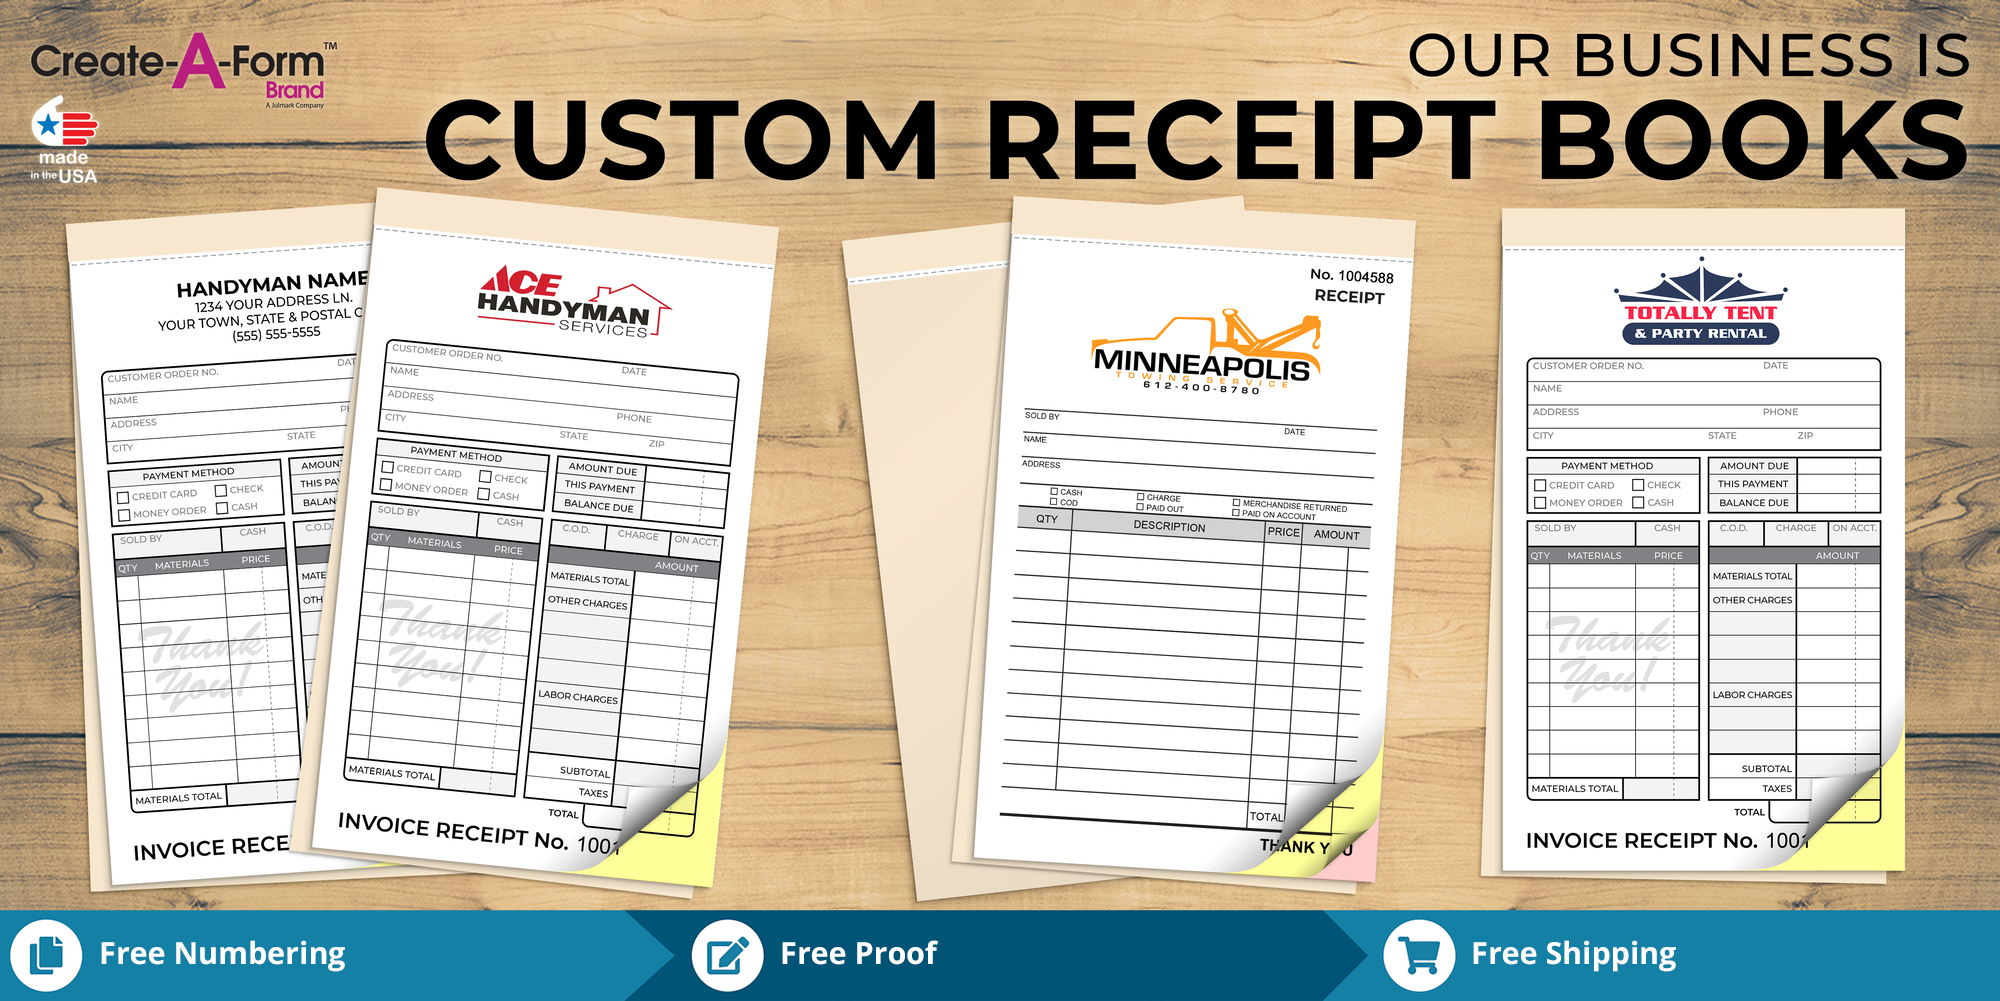 https://printpps.com/images/products_gallery_images/4_25_x_7_Sales_Receipts-banner.png